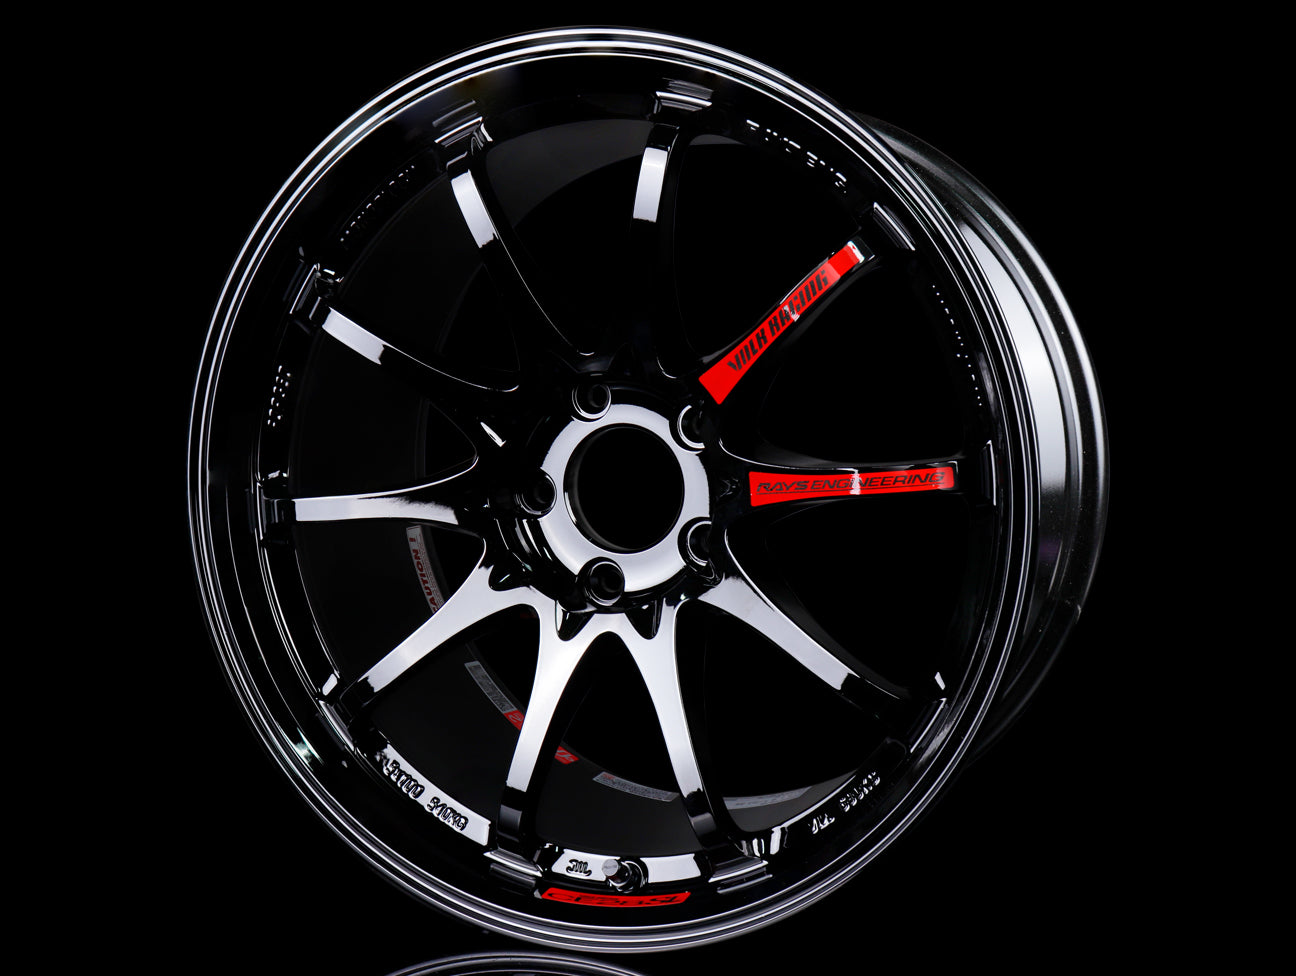 Volk Racing CE28SL Wheels - Gloss Black 18x9.5 / 5x114 / +35